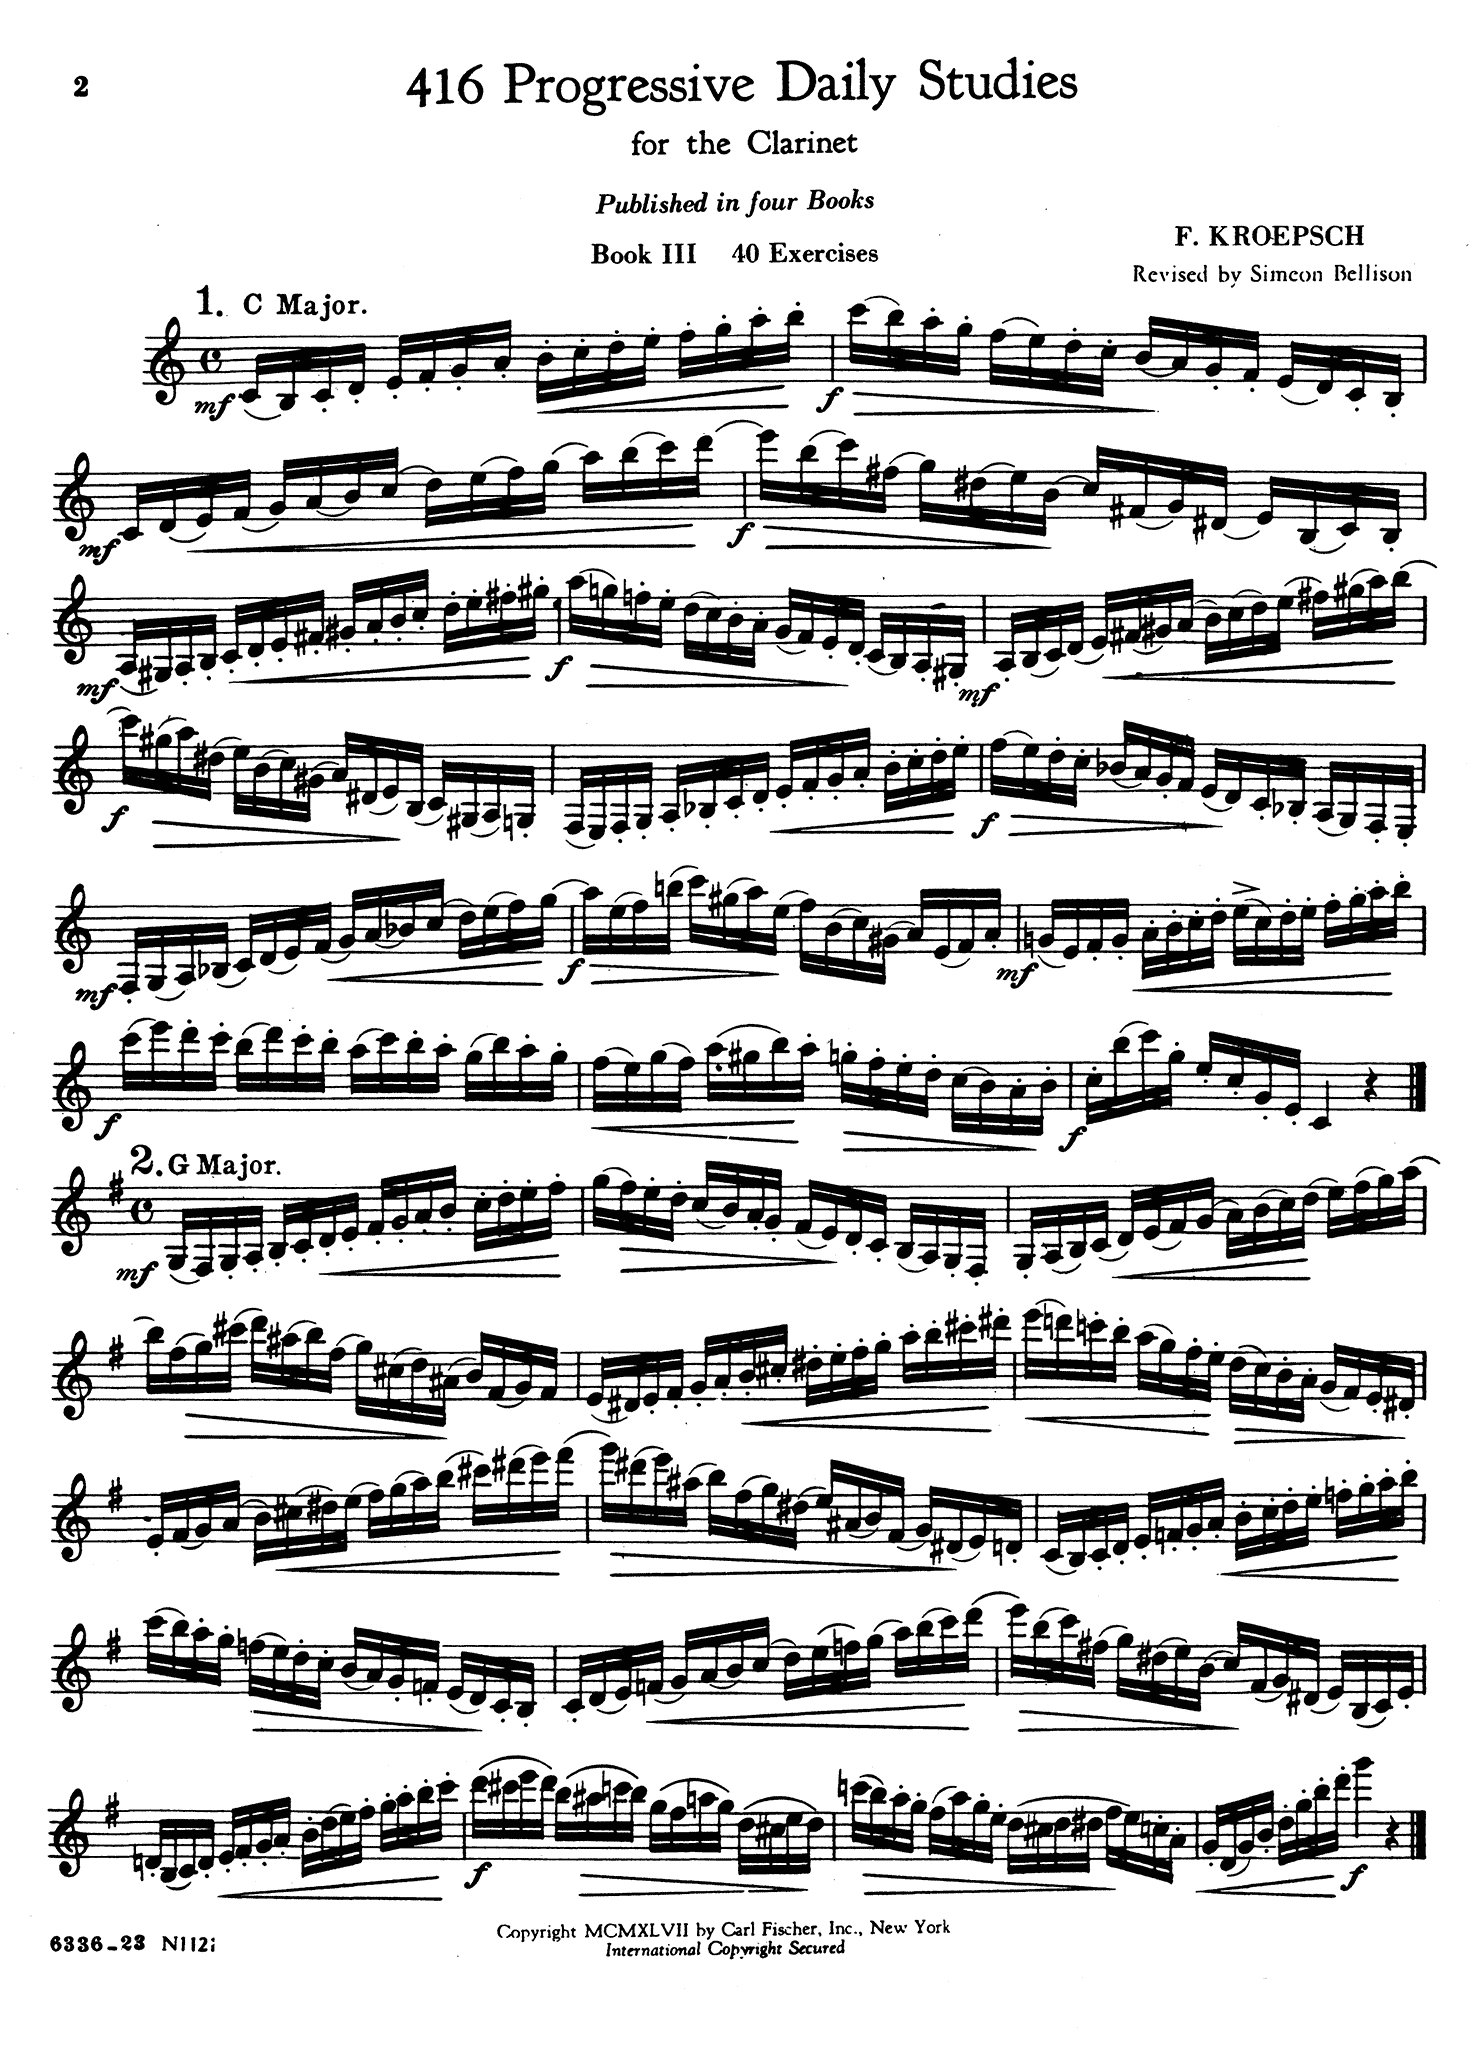 416 Progressive Studies for Clarinet, Book 3 Page 2